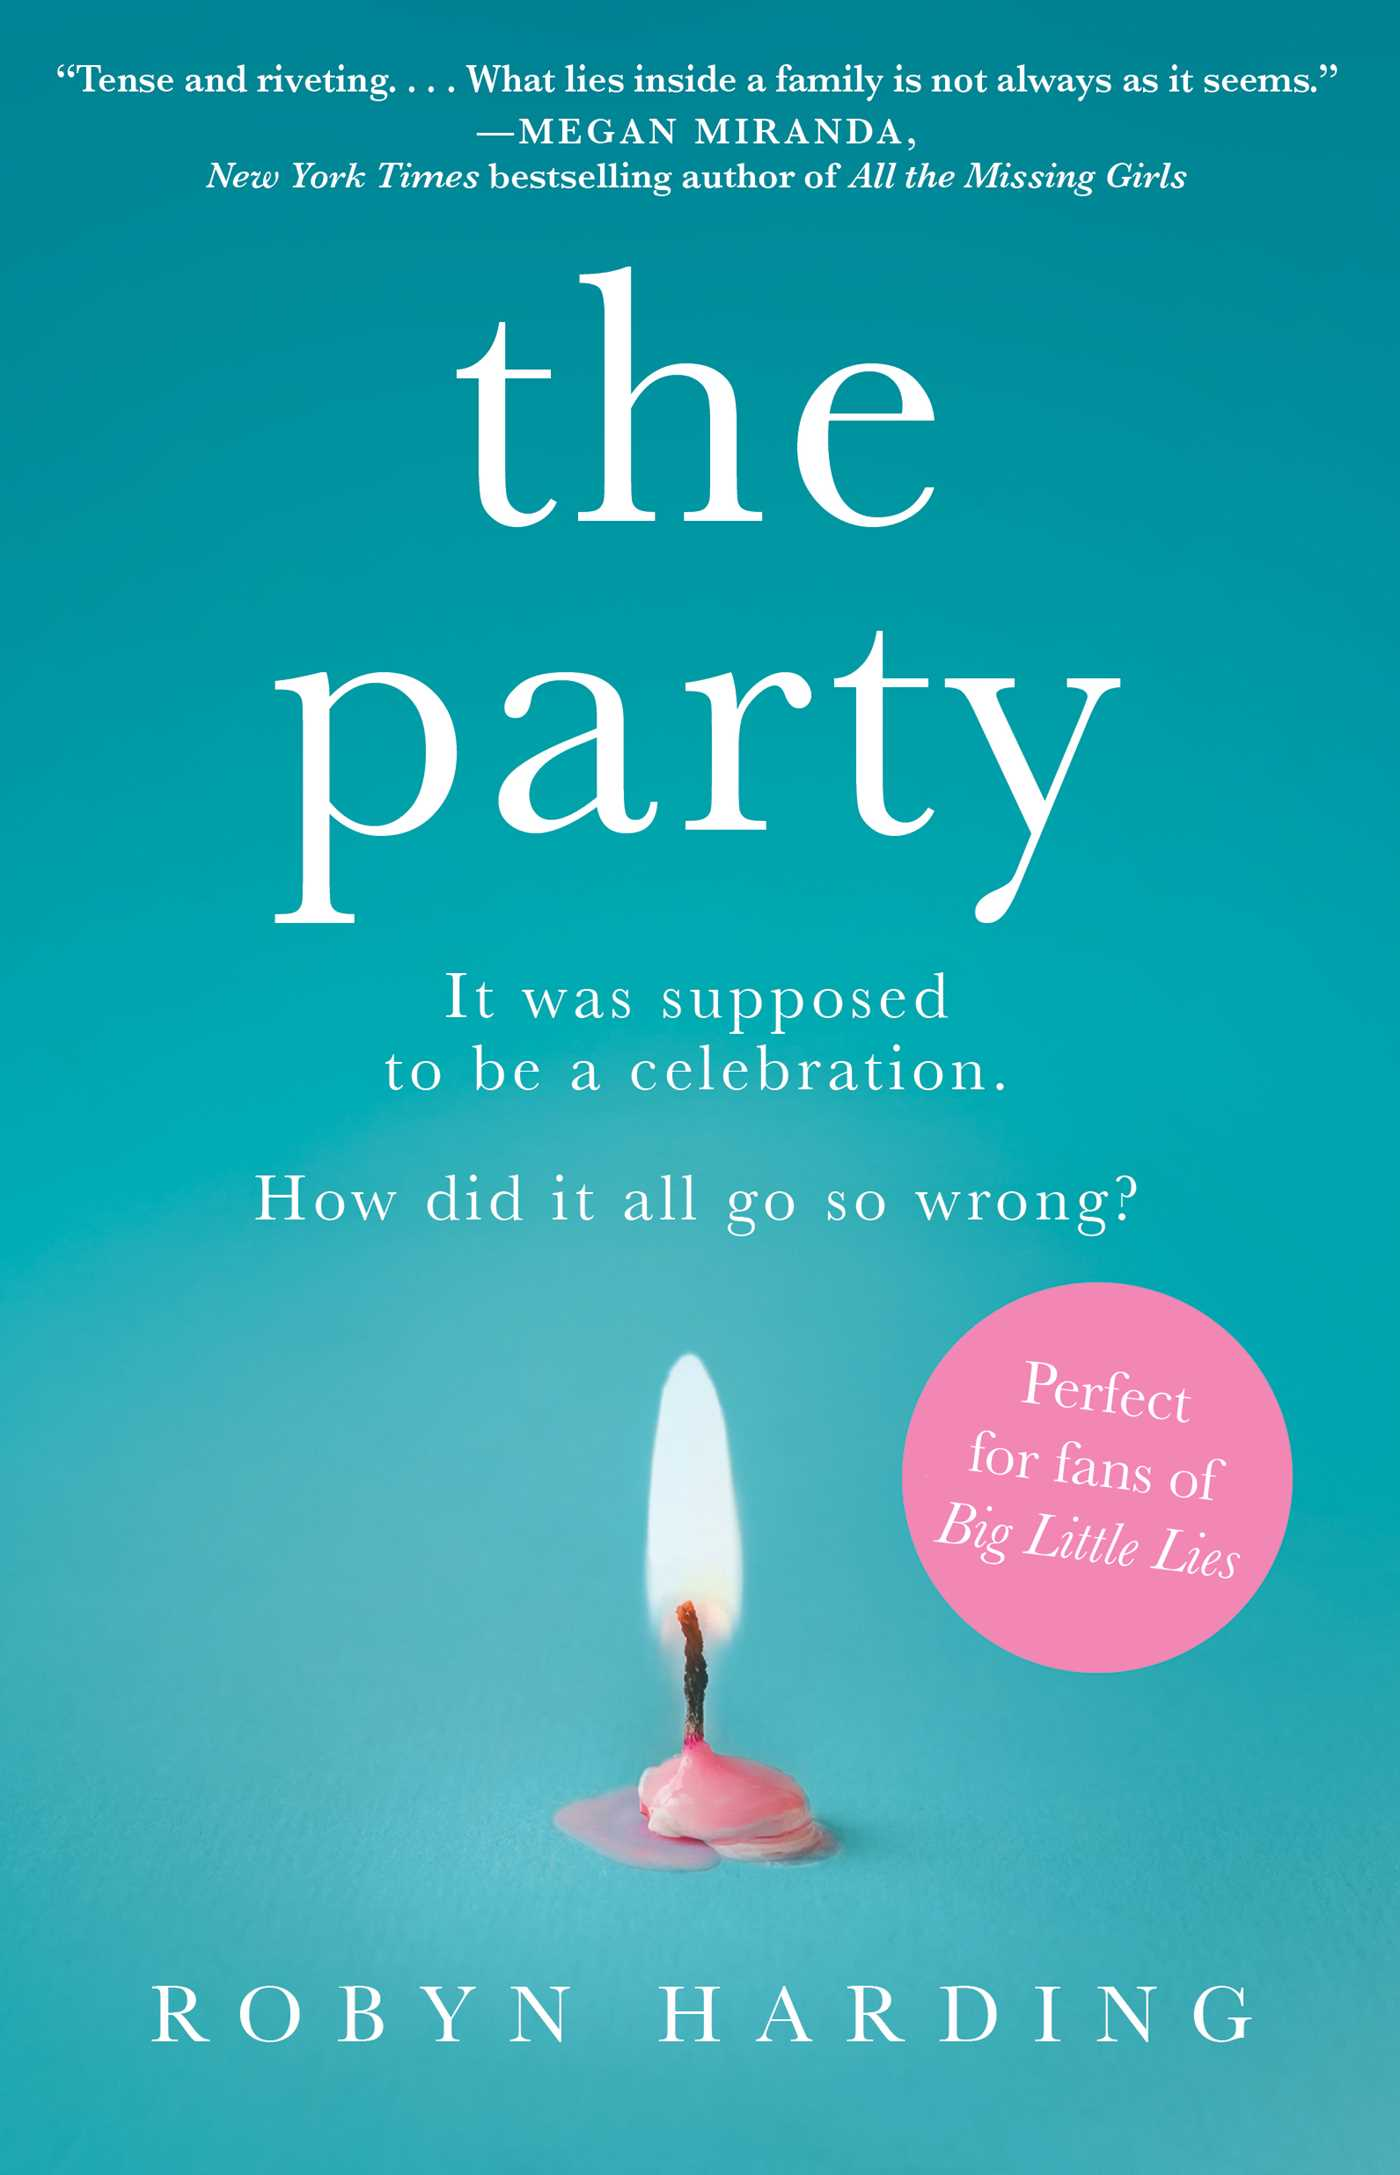 The party 9781501161308 hr